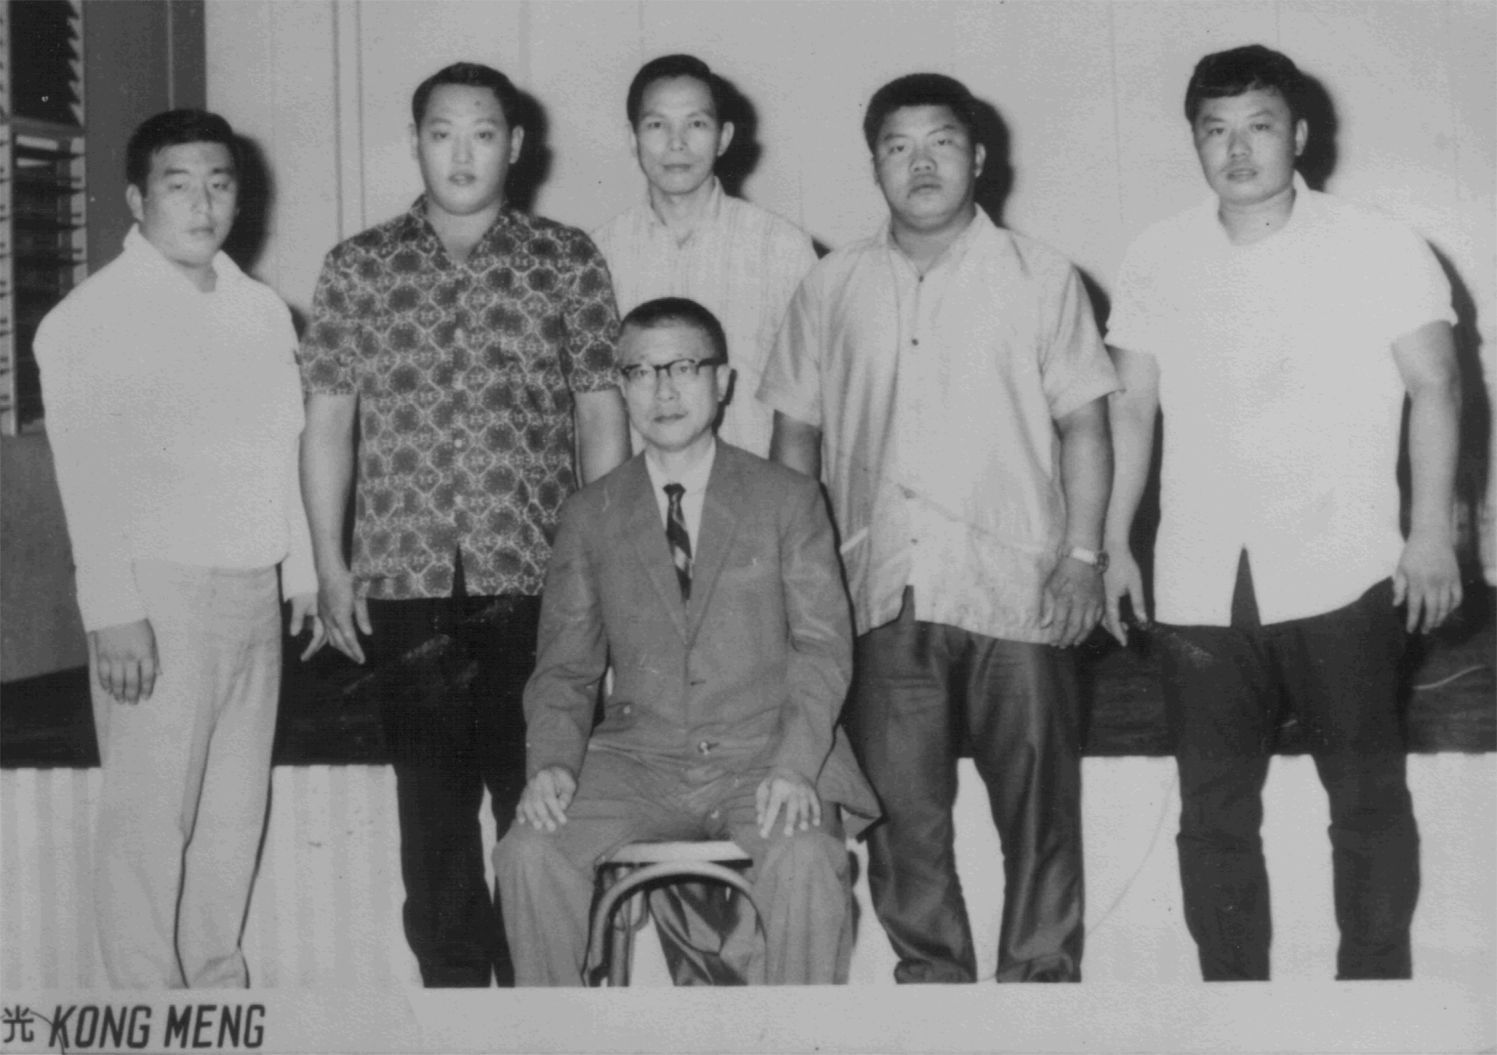 Master Lee with Master Yue Shu Ting (Master Lee is 2nd left)